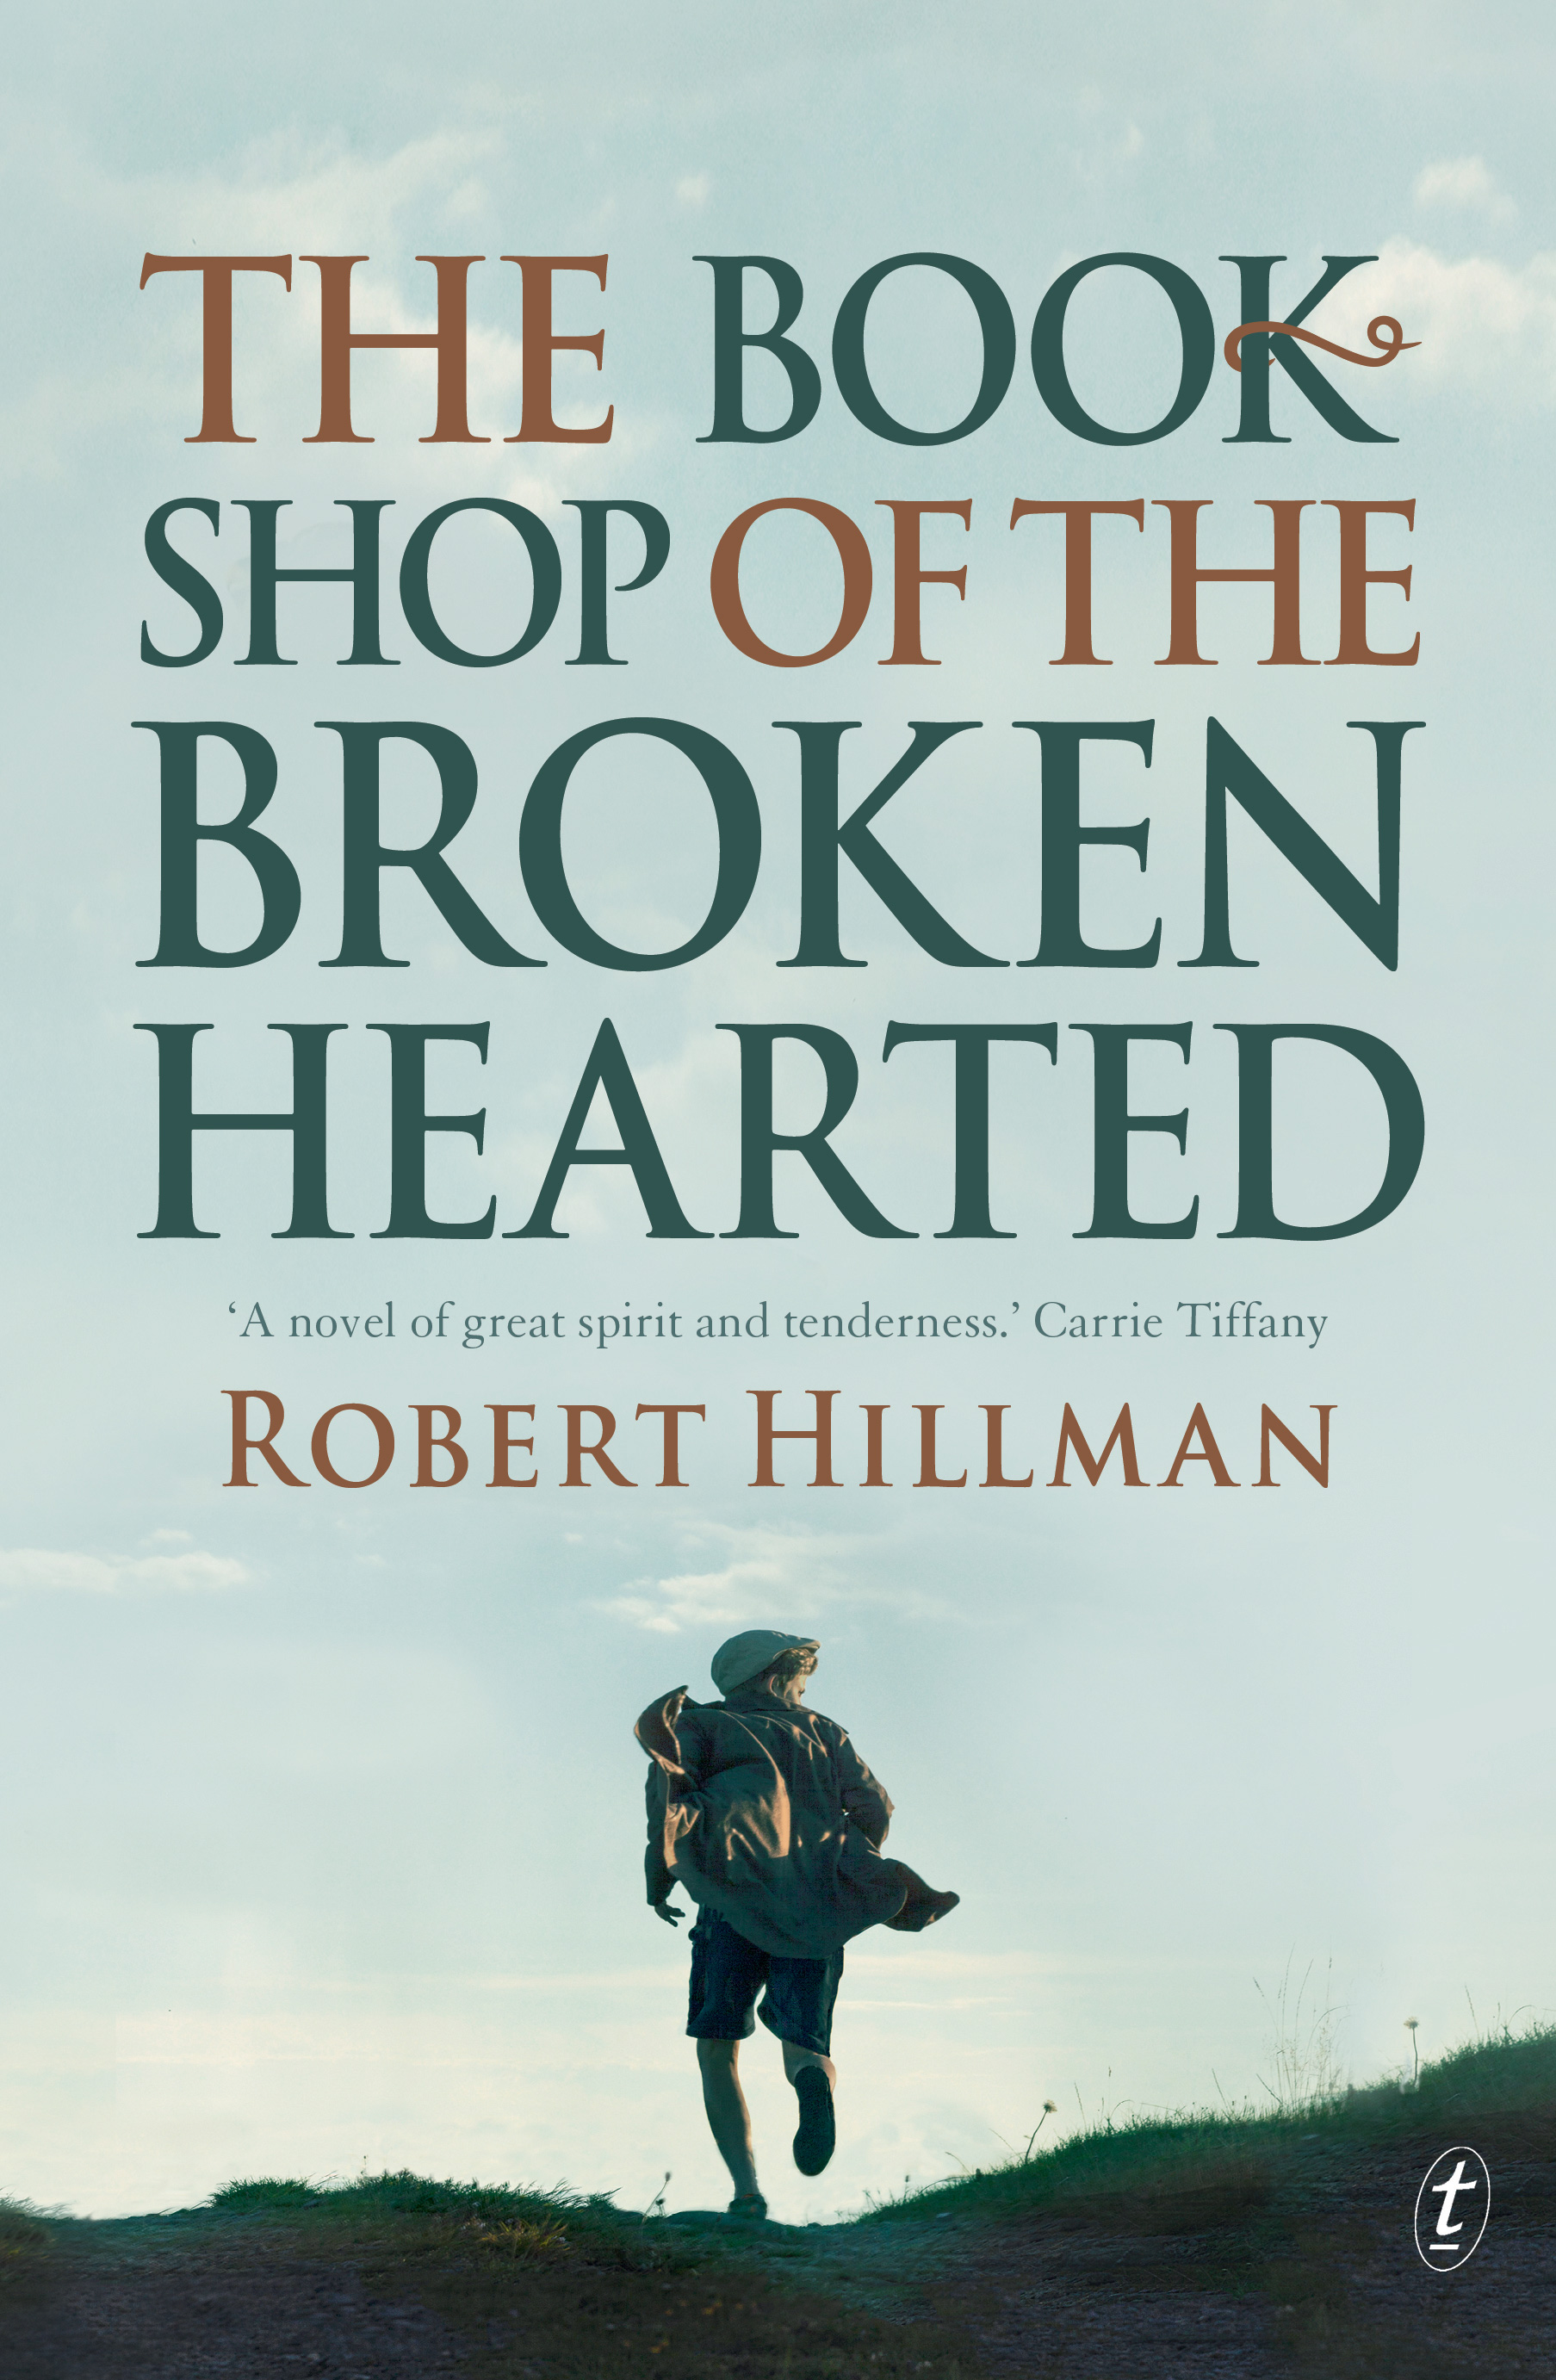 The Bookshop of the Broken Hearted by Robert Hillman (Text Publishing)